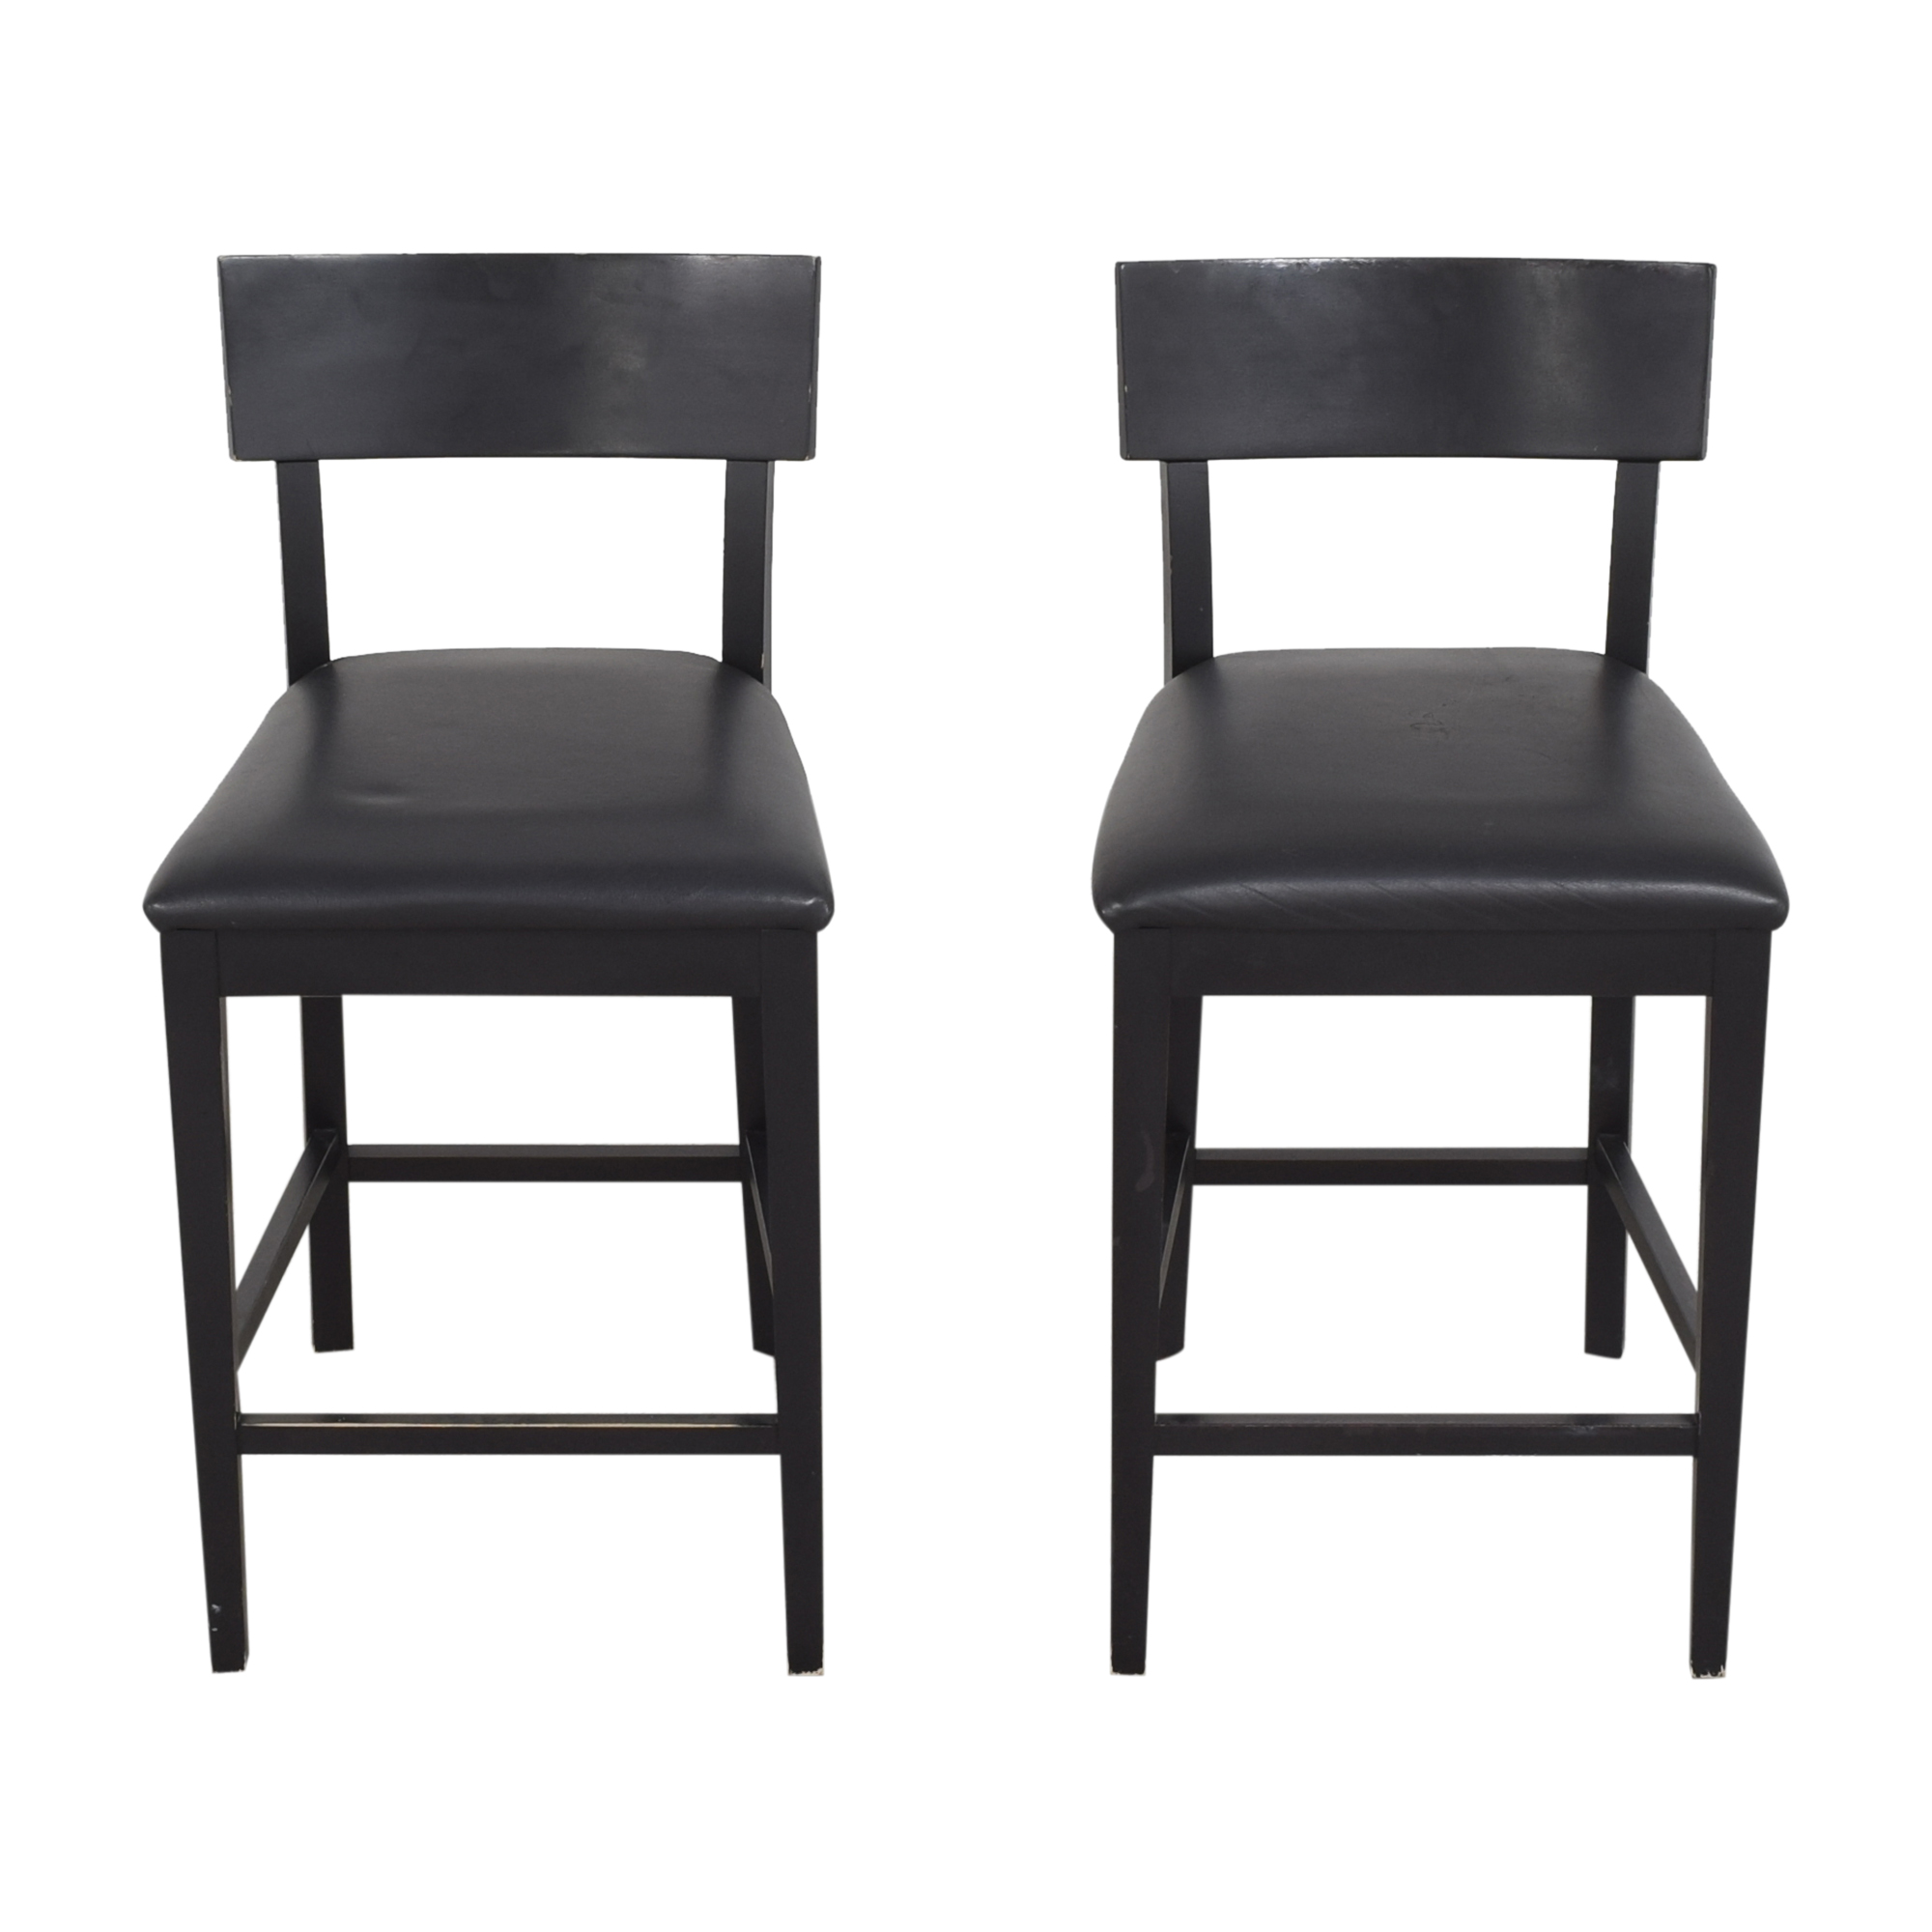 Room & Board Room & Board Doyle Counter Stools coupon